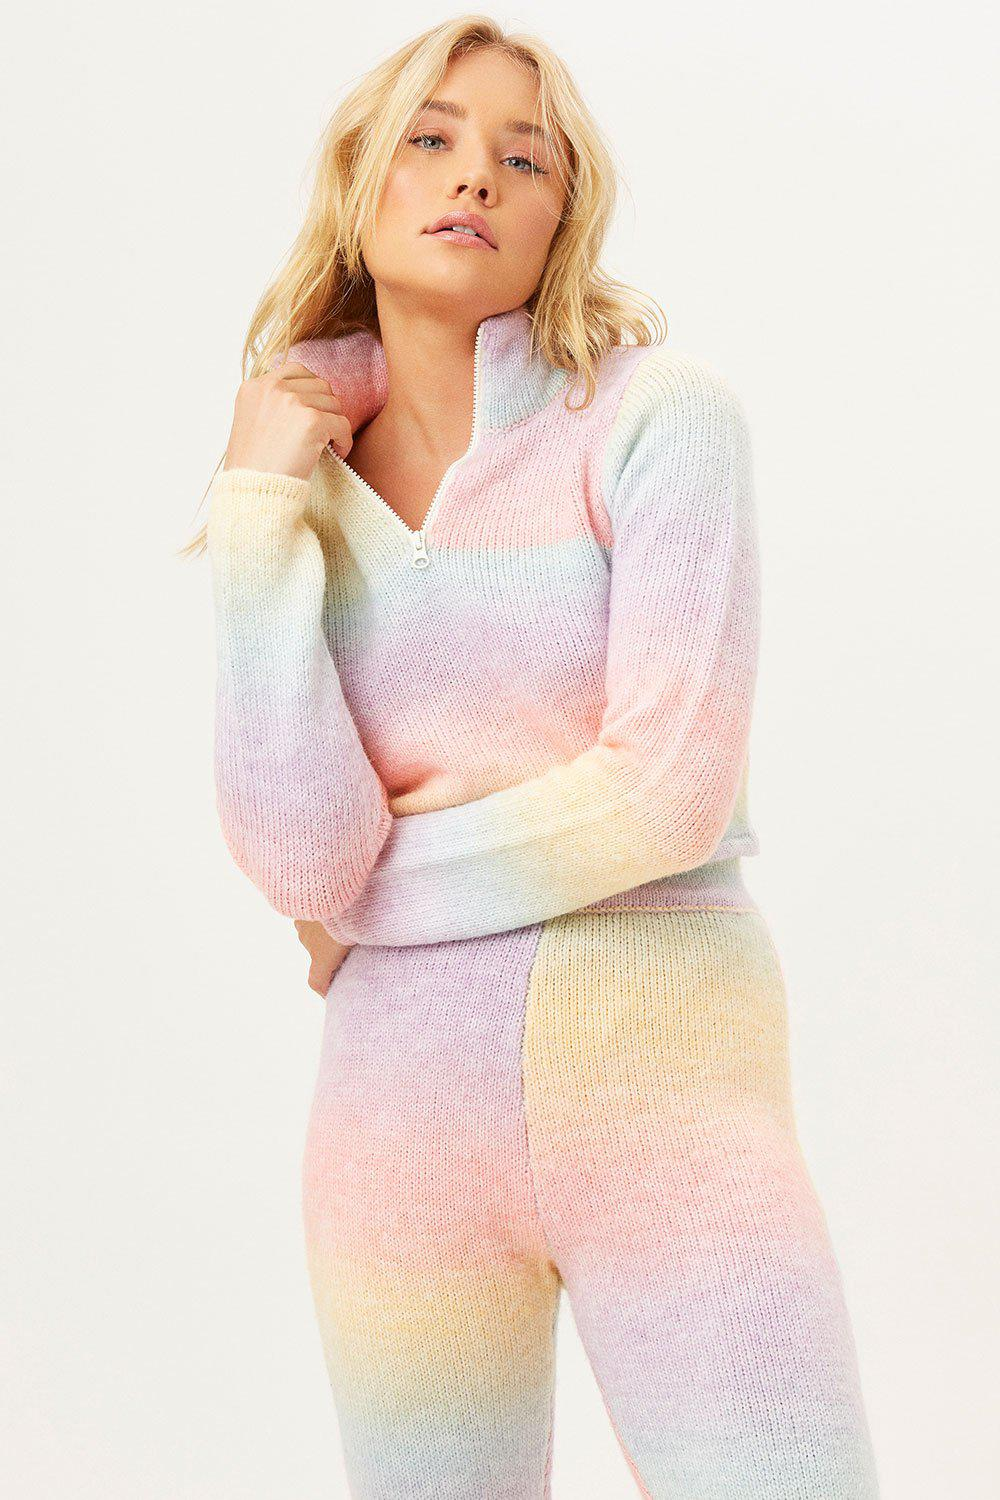 Bowie Cropped Knit Sweater - Cotton Candy 1